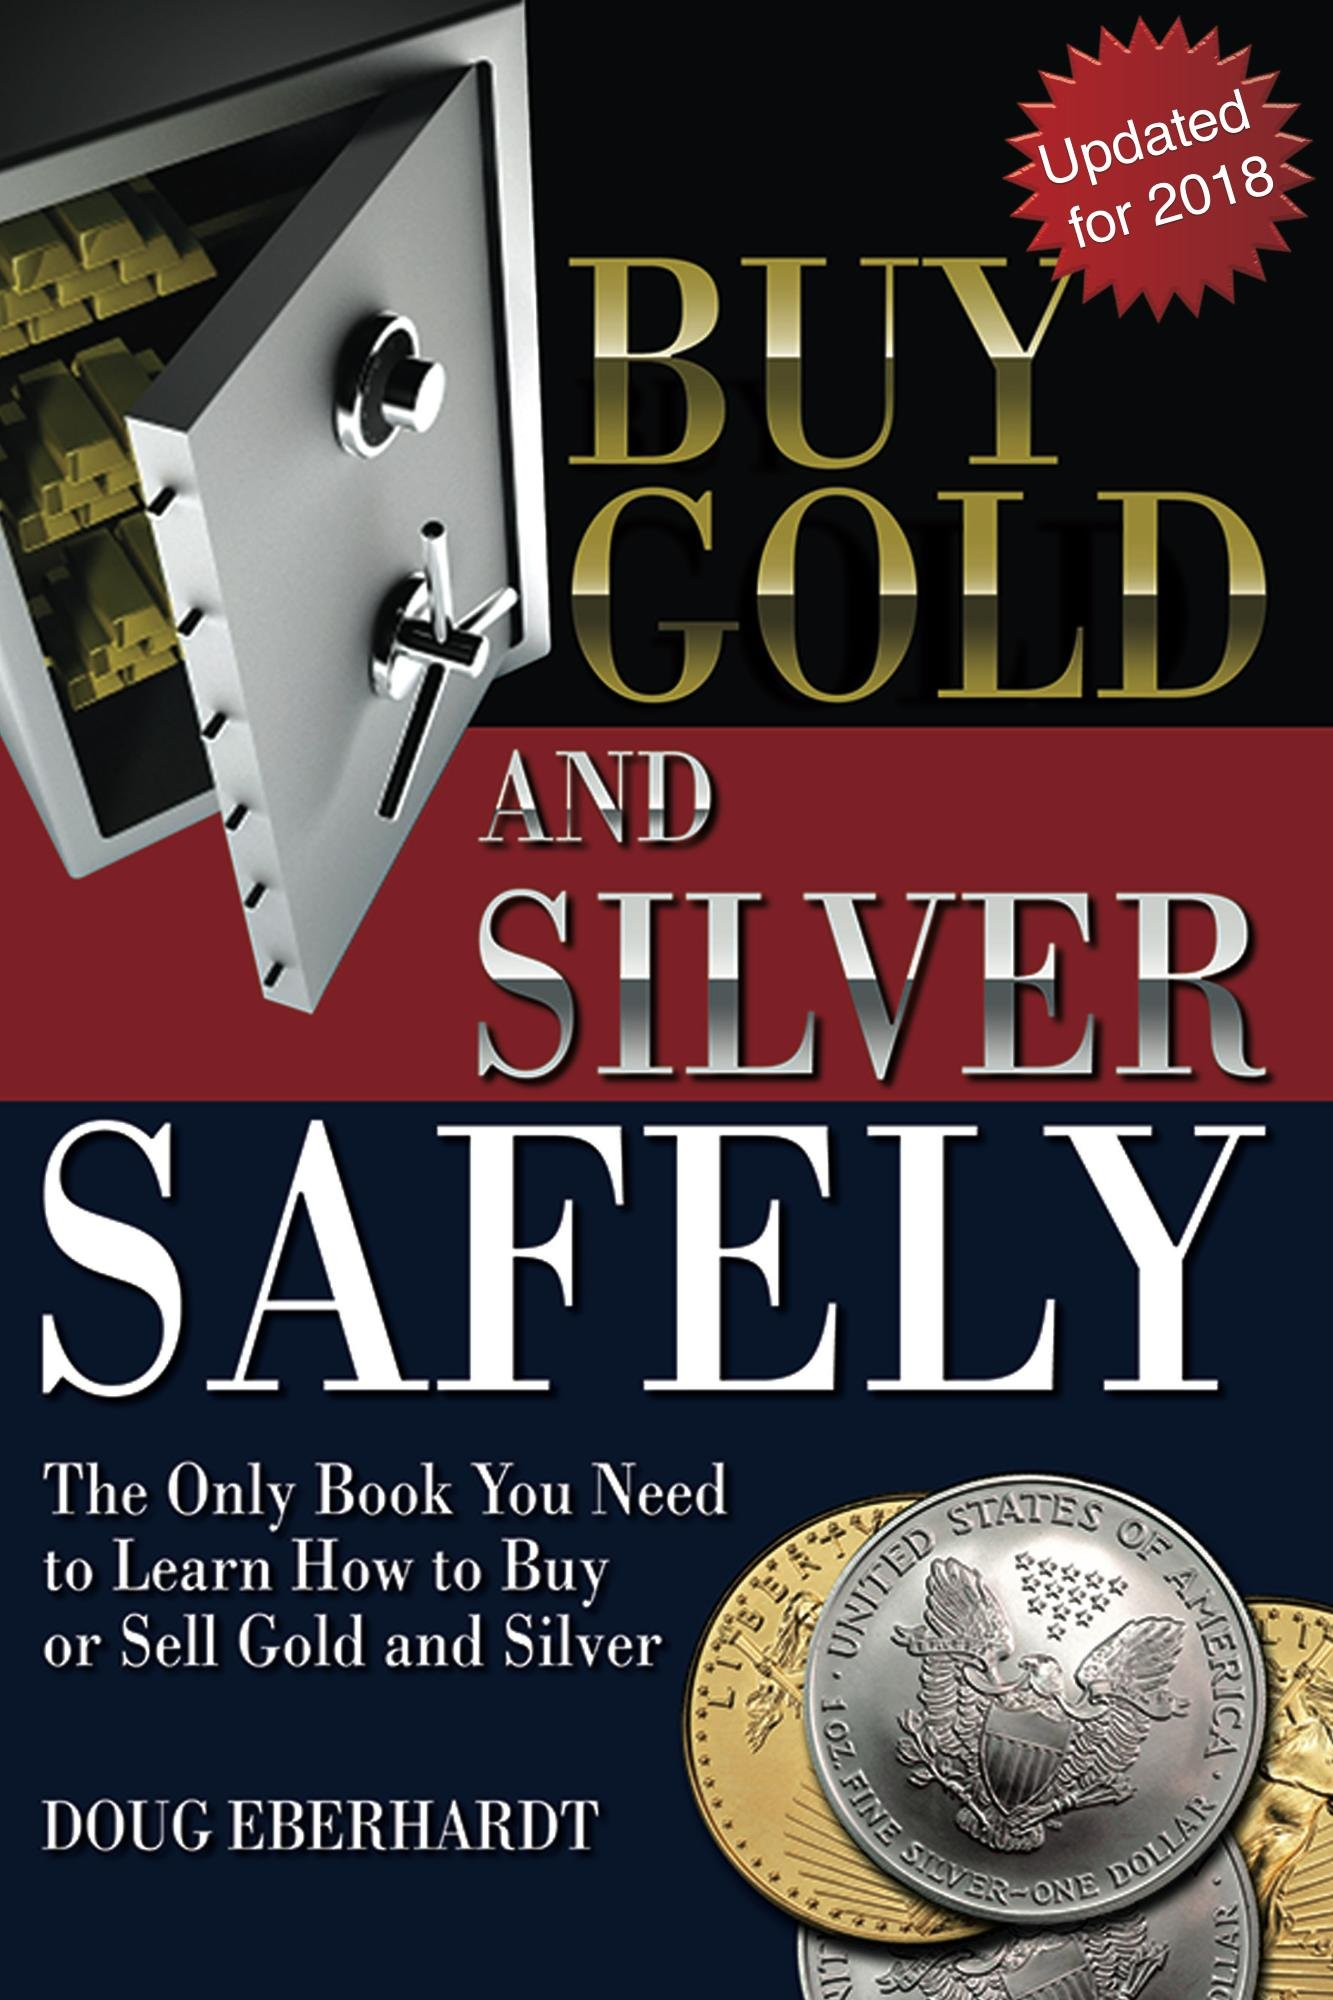 Buy Gold And Silver Safely   Updated For 2018  The Only Book You Need To Learn How To Buy Or Sell Gold And Sivler  English Edition